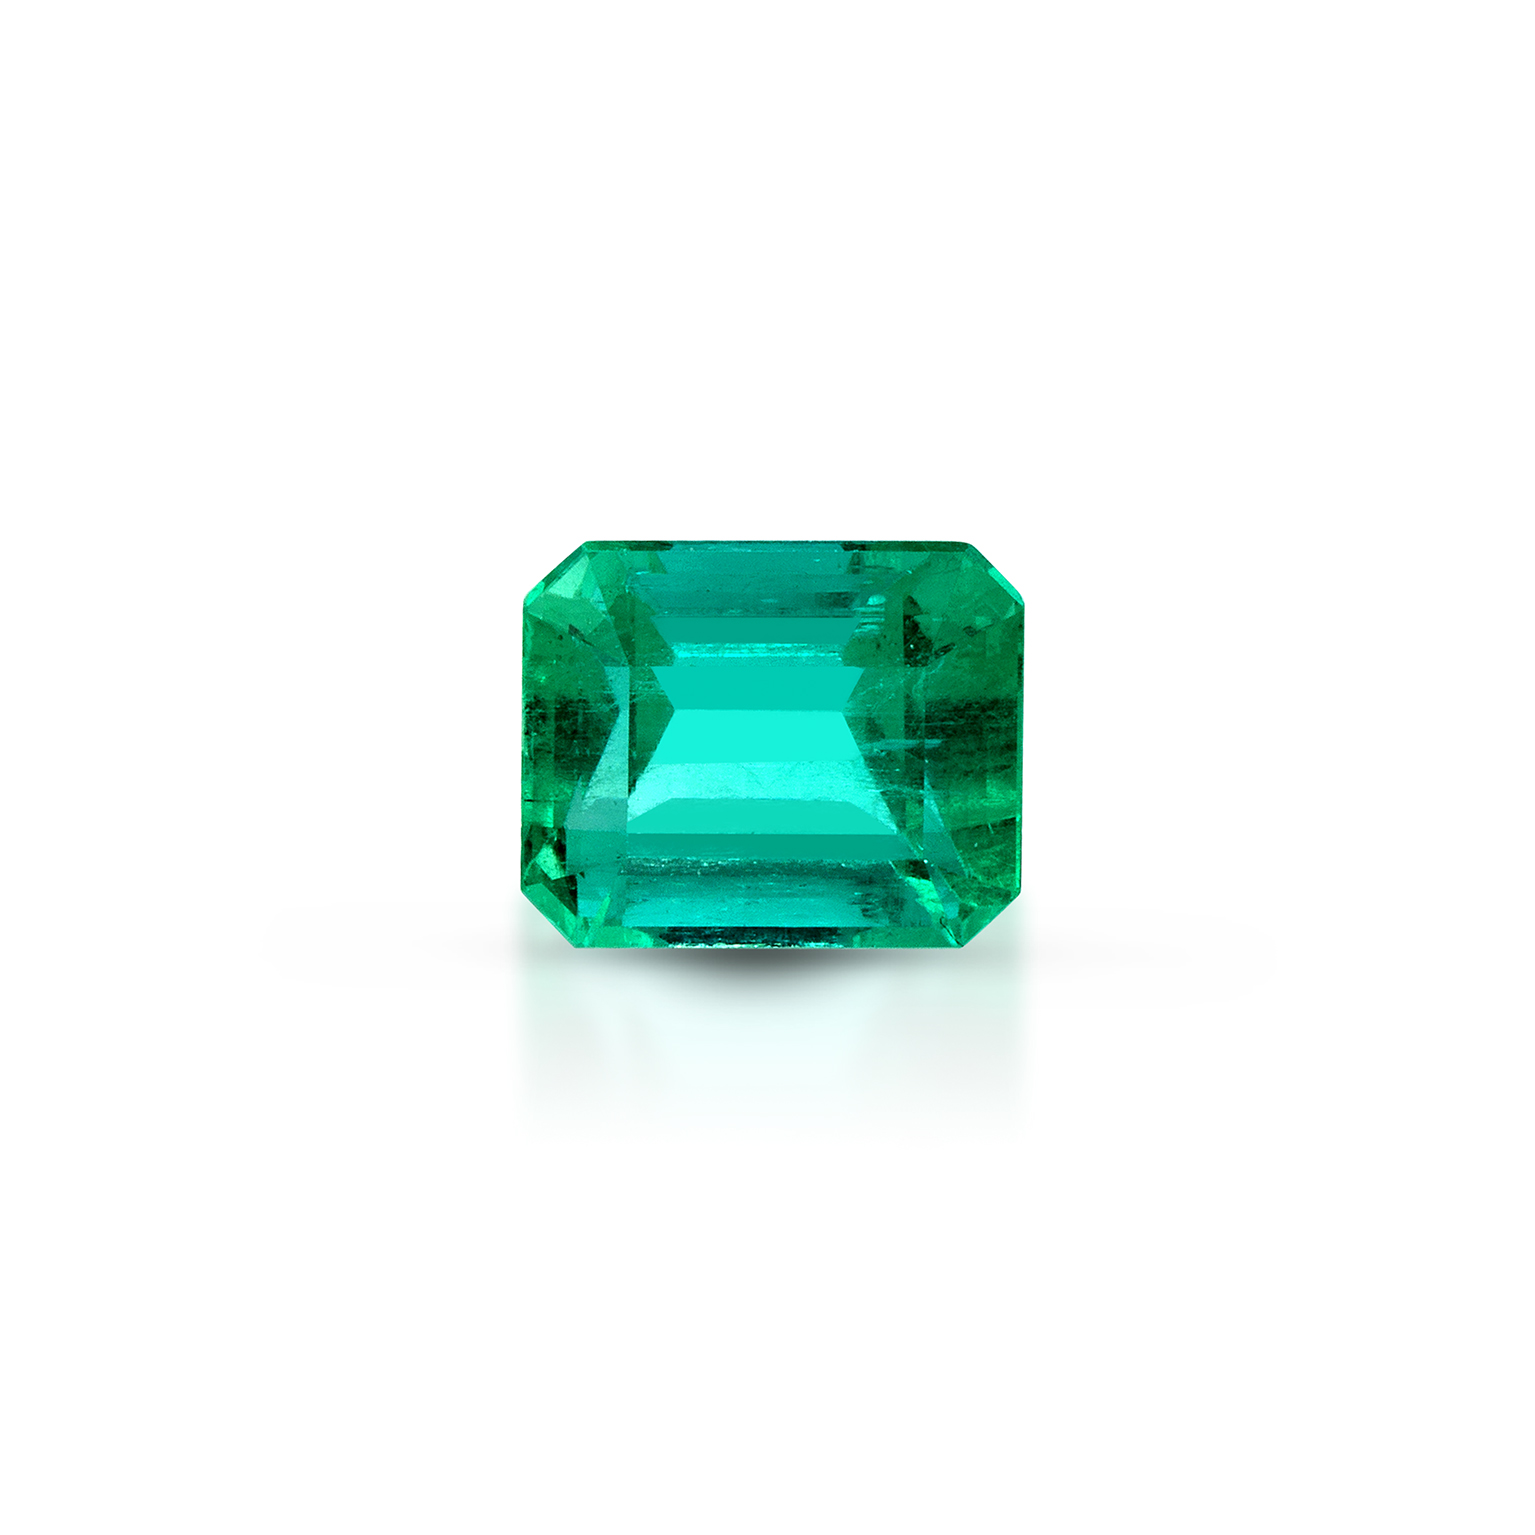 ClaudiaHamann_Emerald_Colombia_Octagon_5,62cts_EMH18D1